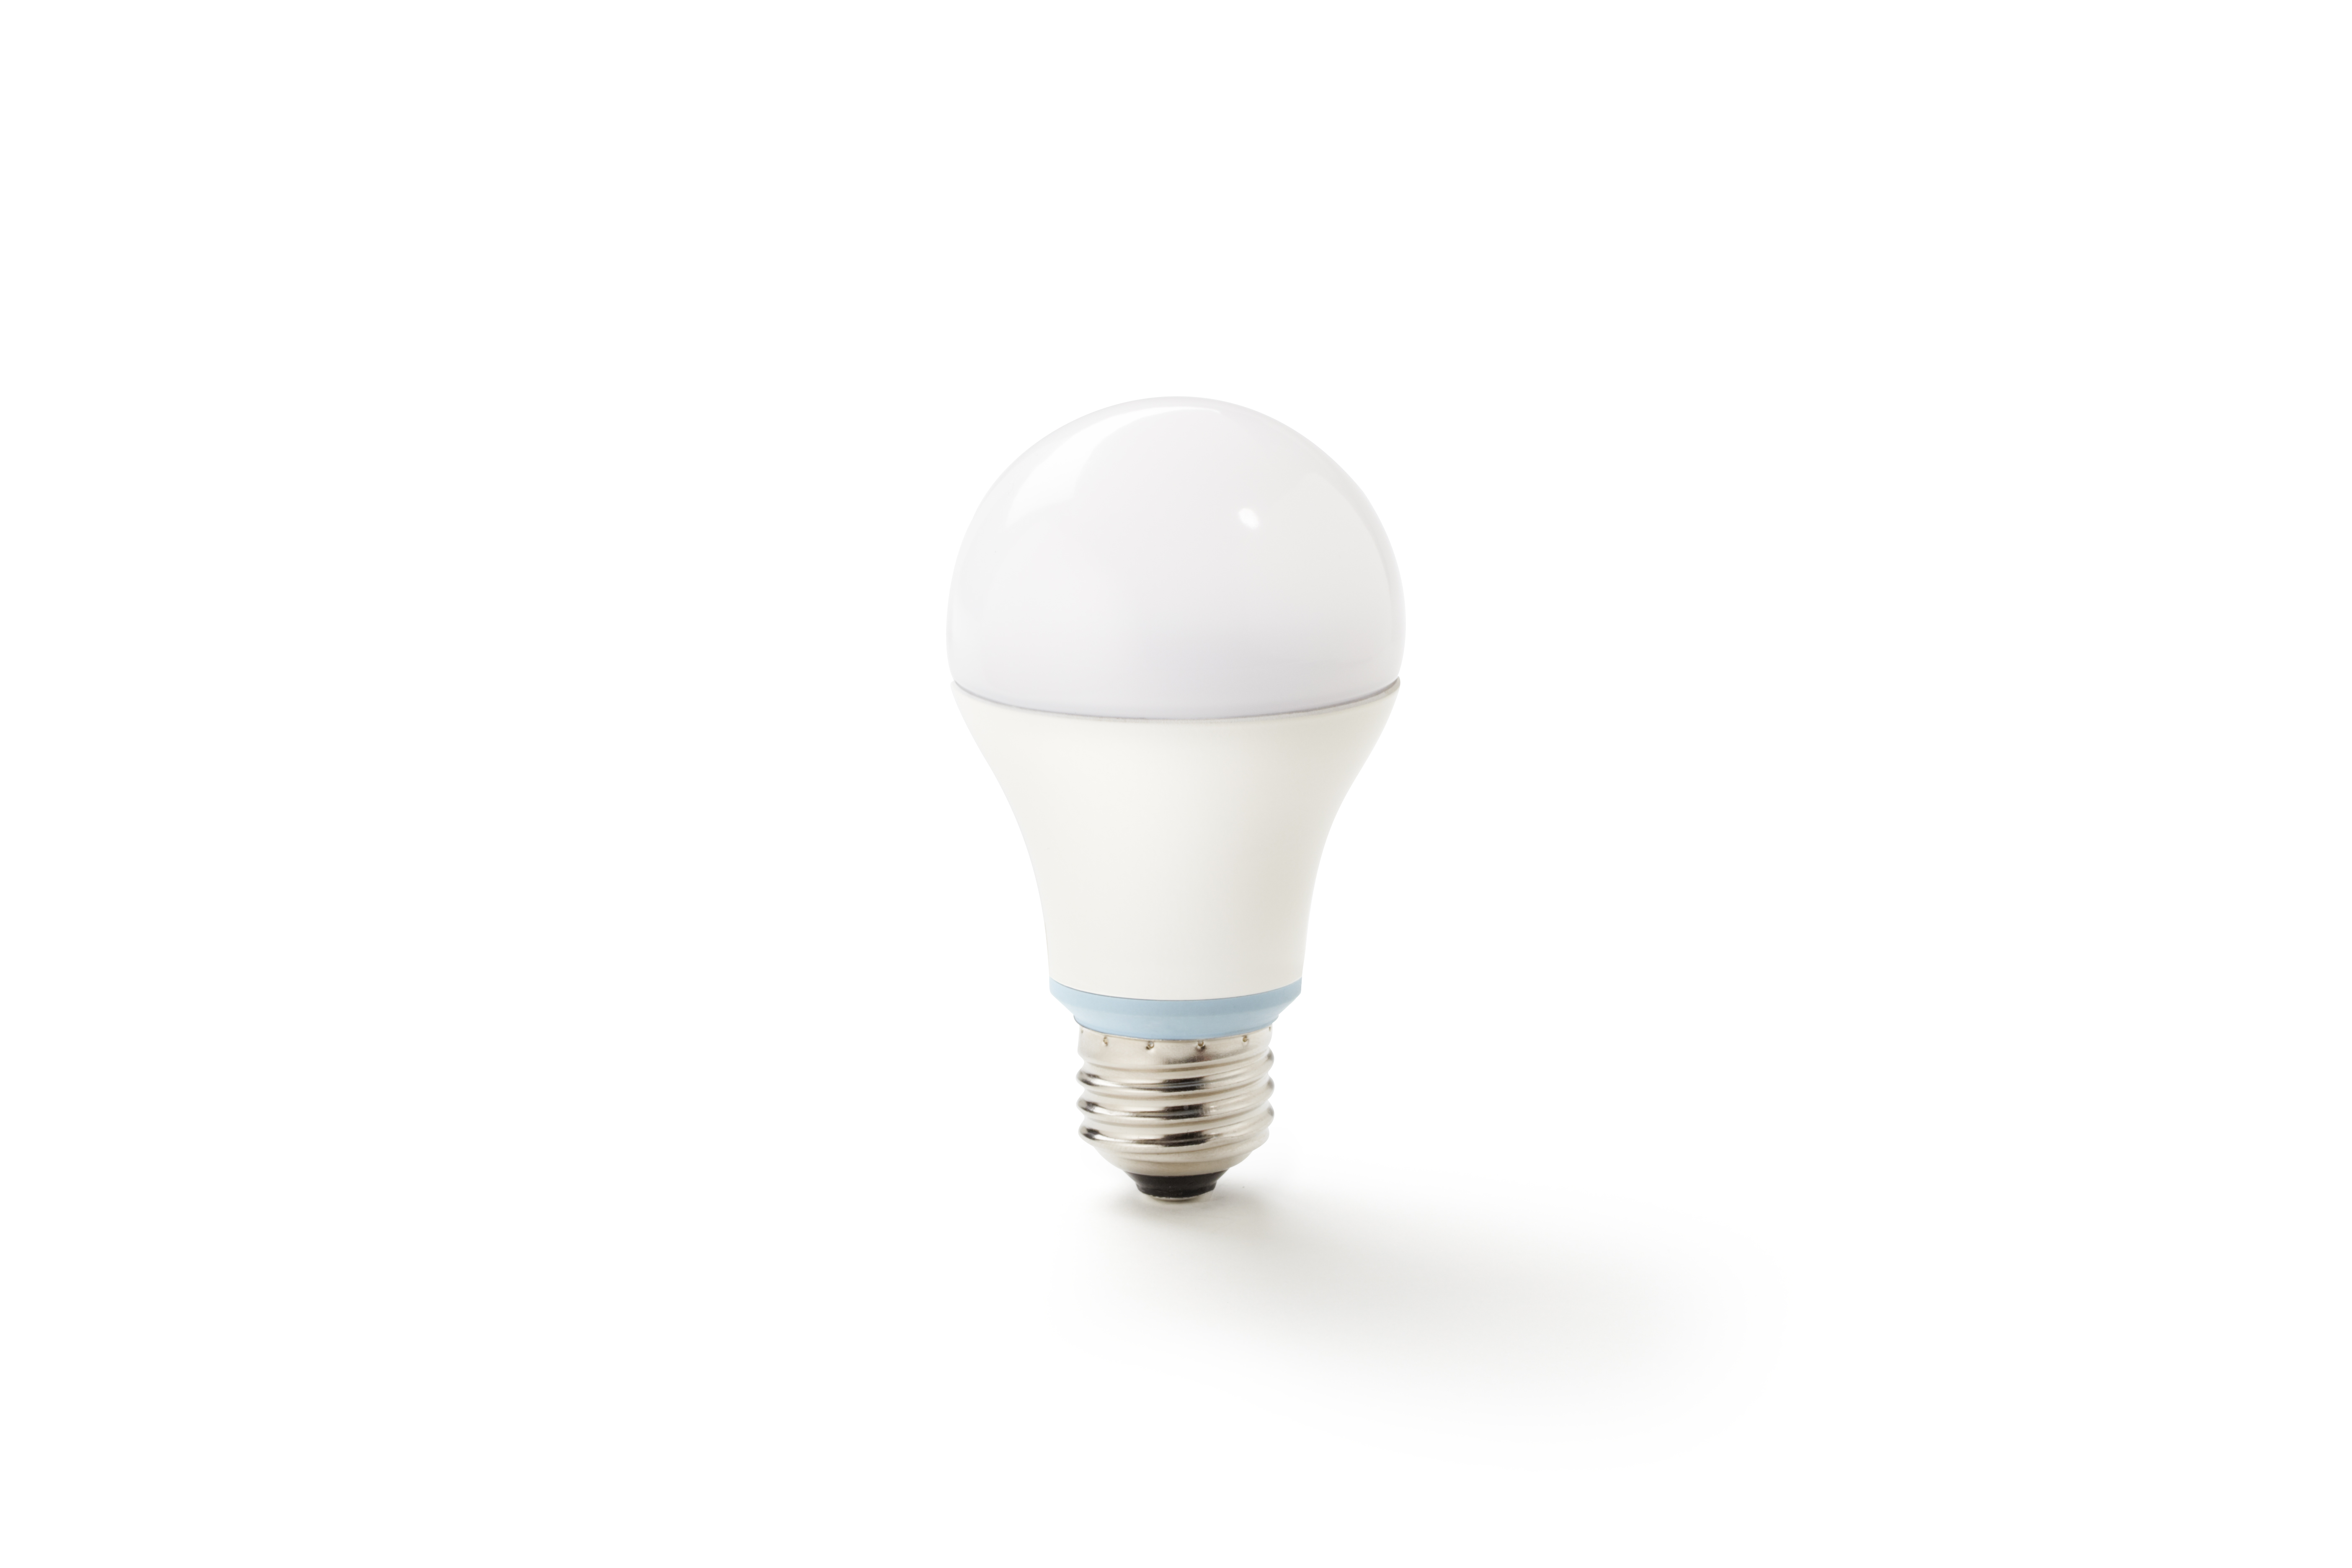 Ge Lighting Reveals New Led Bulb As Its Chief Innovation Manager Shares Glimpse Of What S Ahead